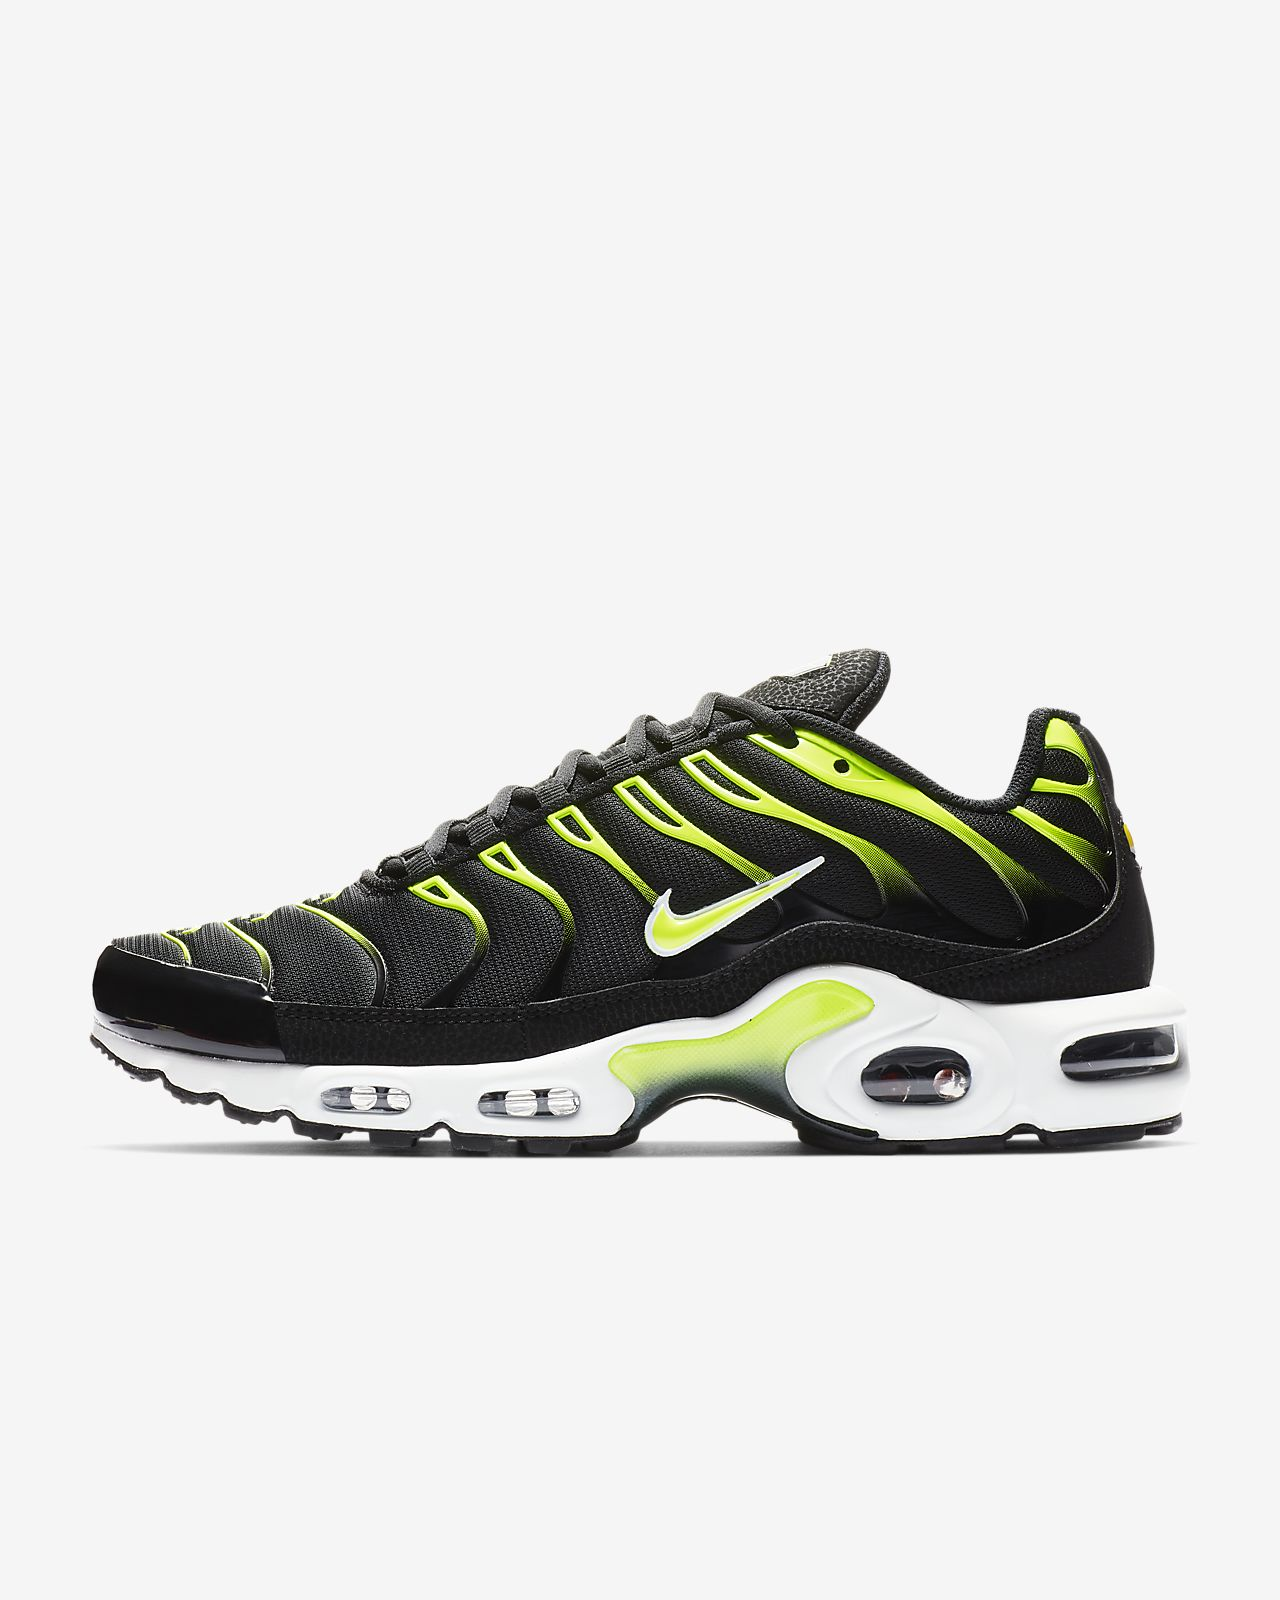 7ef3919935c Nike Air Max Plus Men s Shoe. Nike.com IE